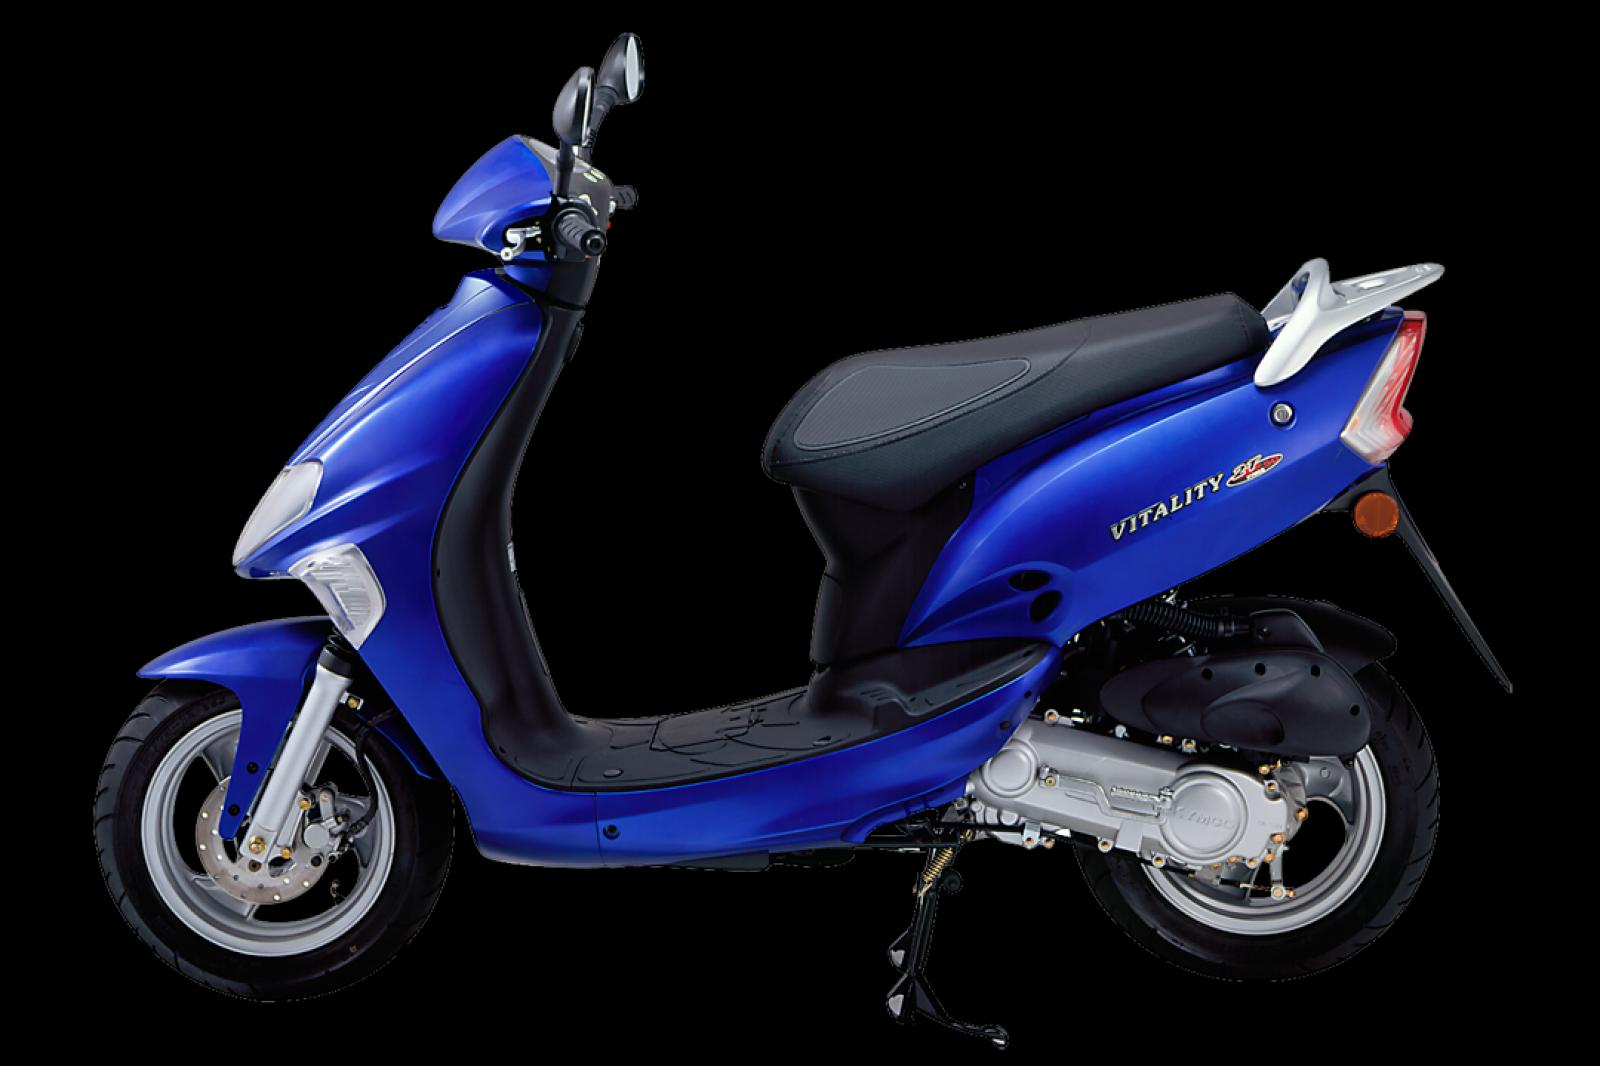 Kymco Vitality 50 2005 images #101902